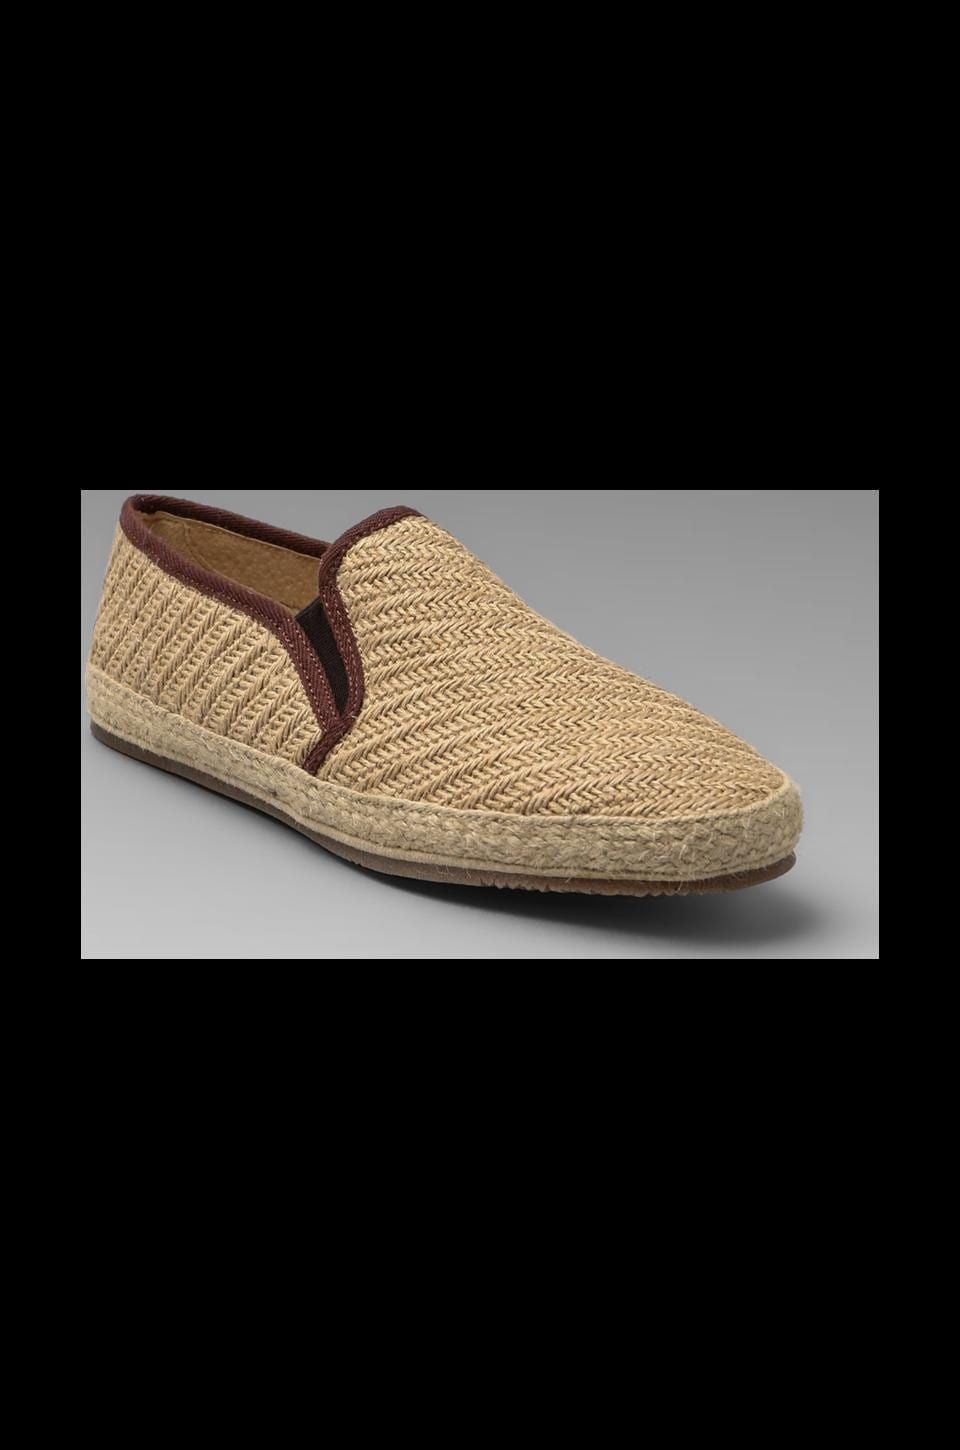 H by Hudson Orca Canvas Slip-On in Natural